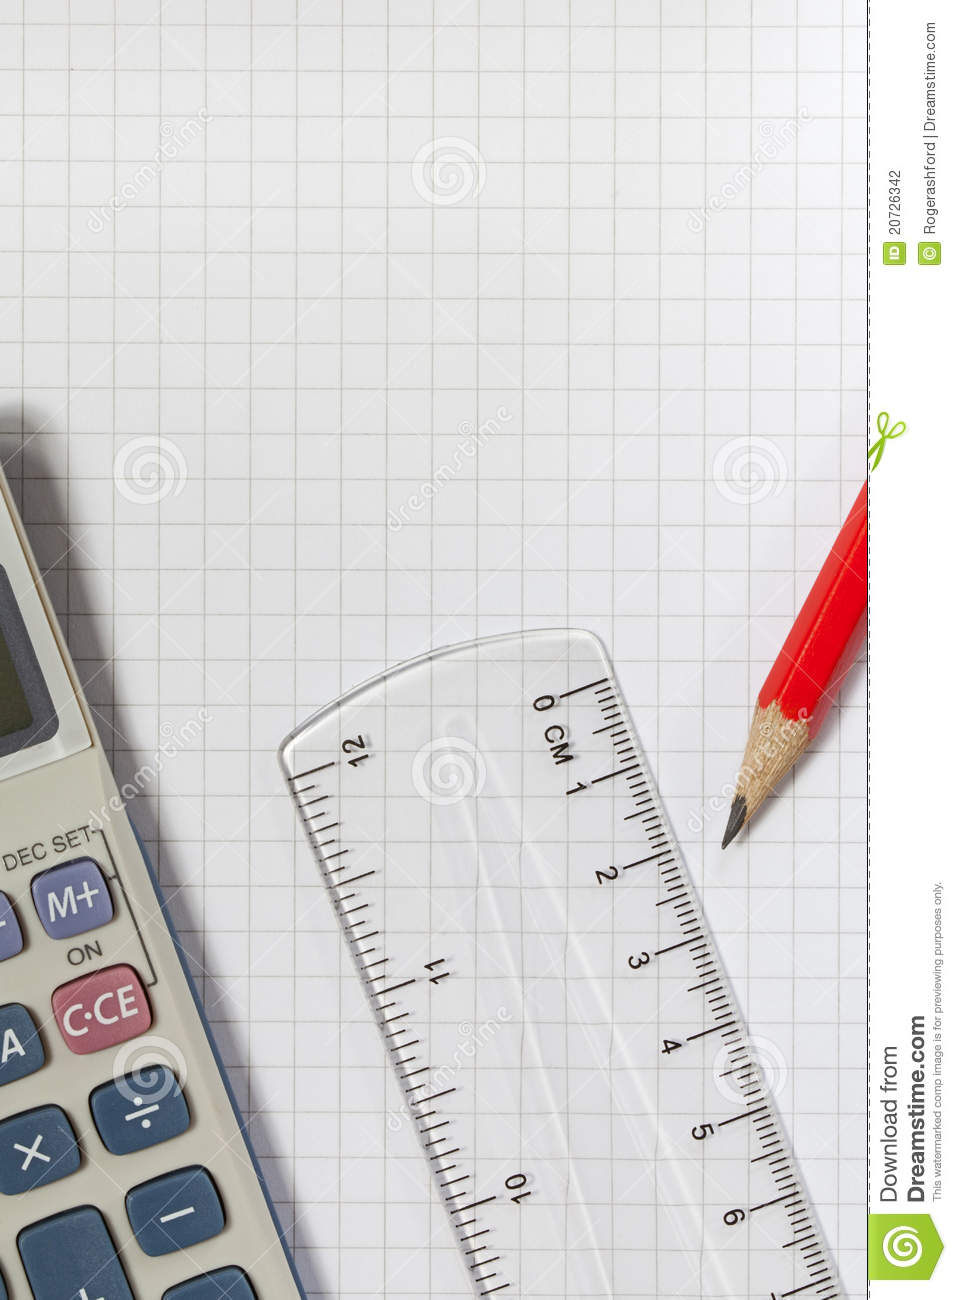 photo wallpaper calculator pencil - photo #15